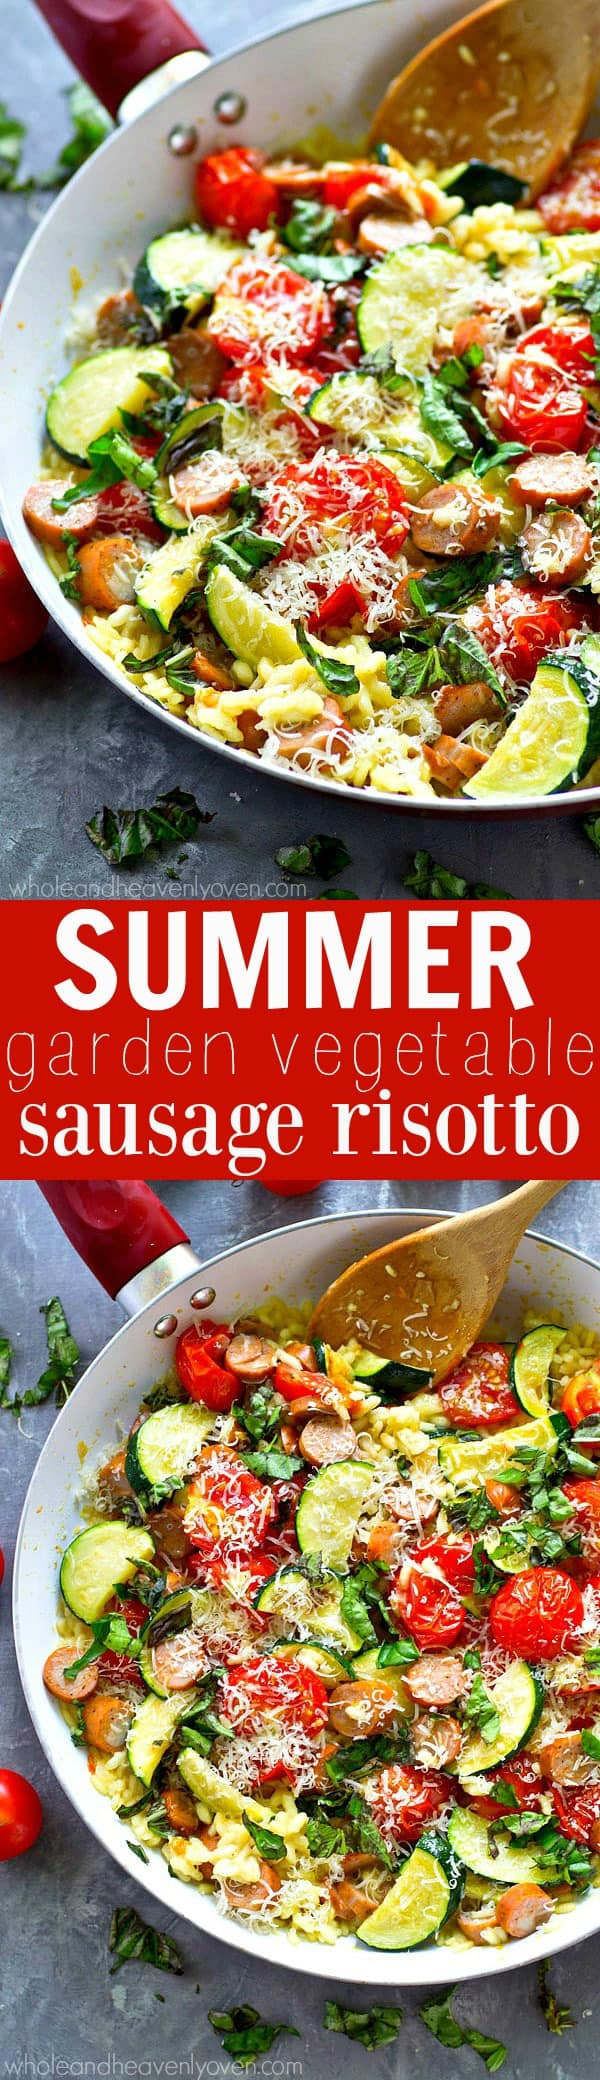 This creamy, comforting risotto is loaded with all the best veggies of summer and absolutely essential for the last days of summer!---Ready in under 30 and made in only one pan!